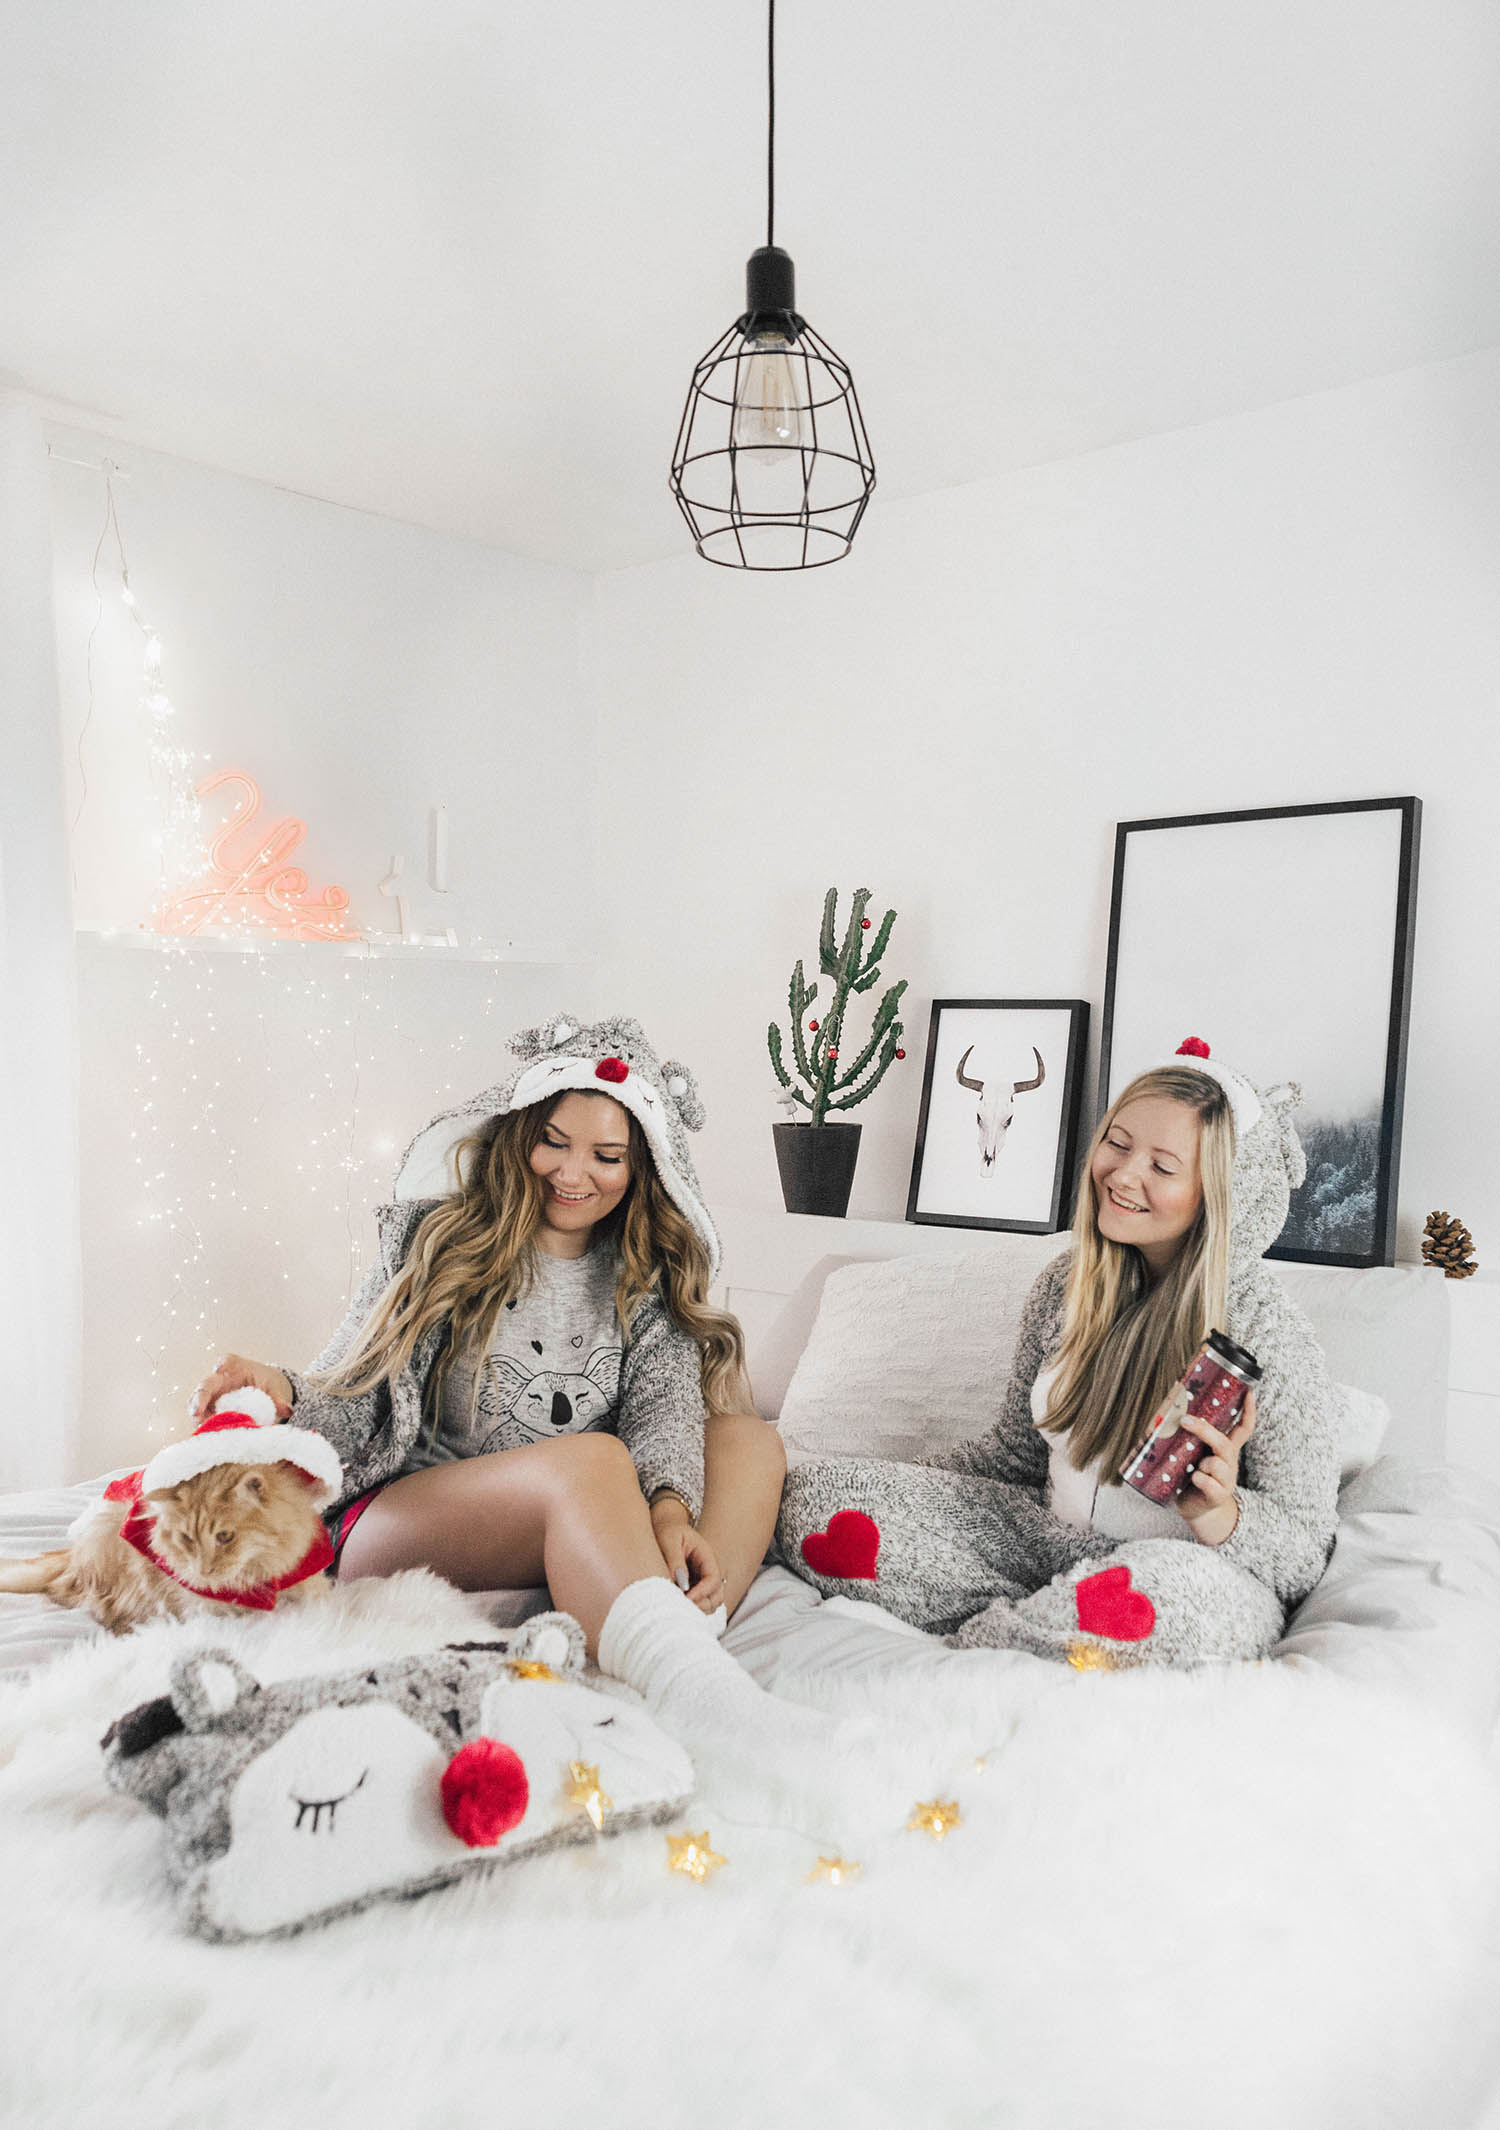 Oh deer - Cosy Christmas Outfits in Bed - Hunkemöller Cosy Collection 2017